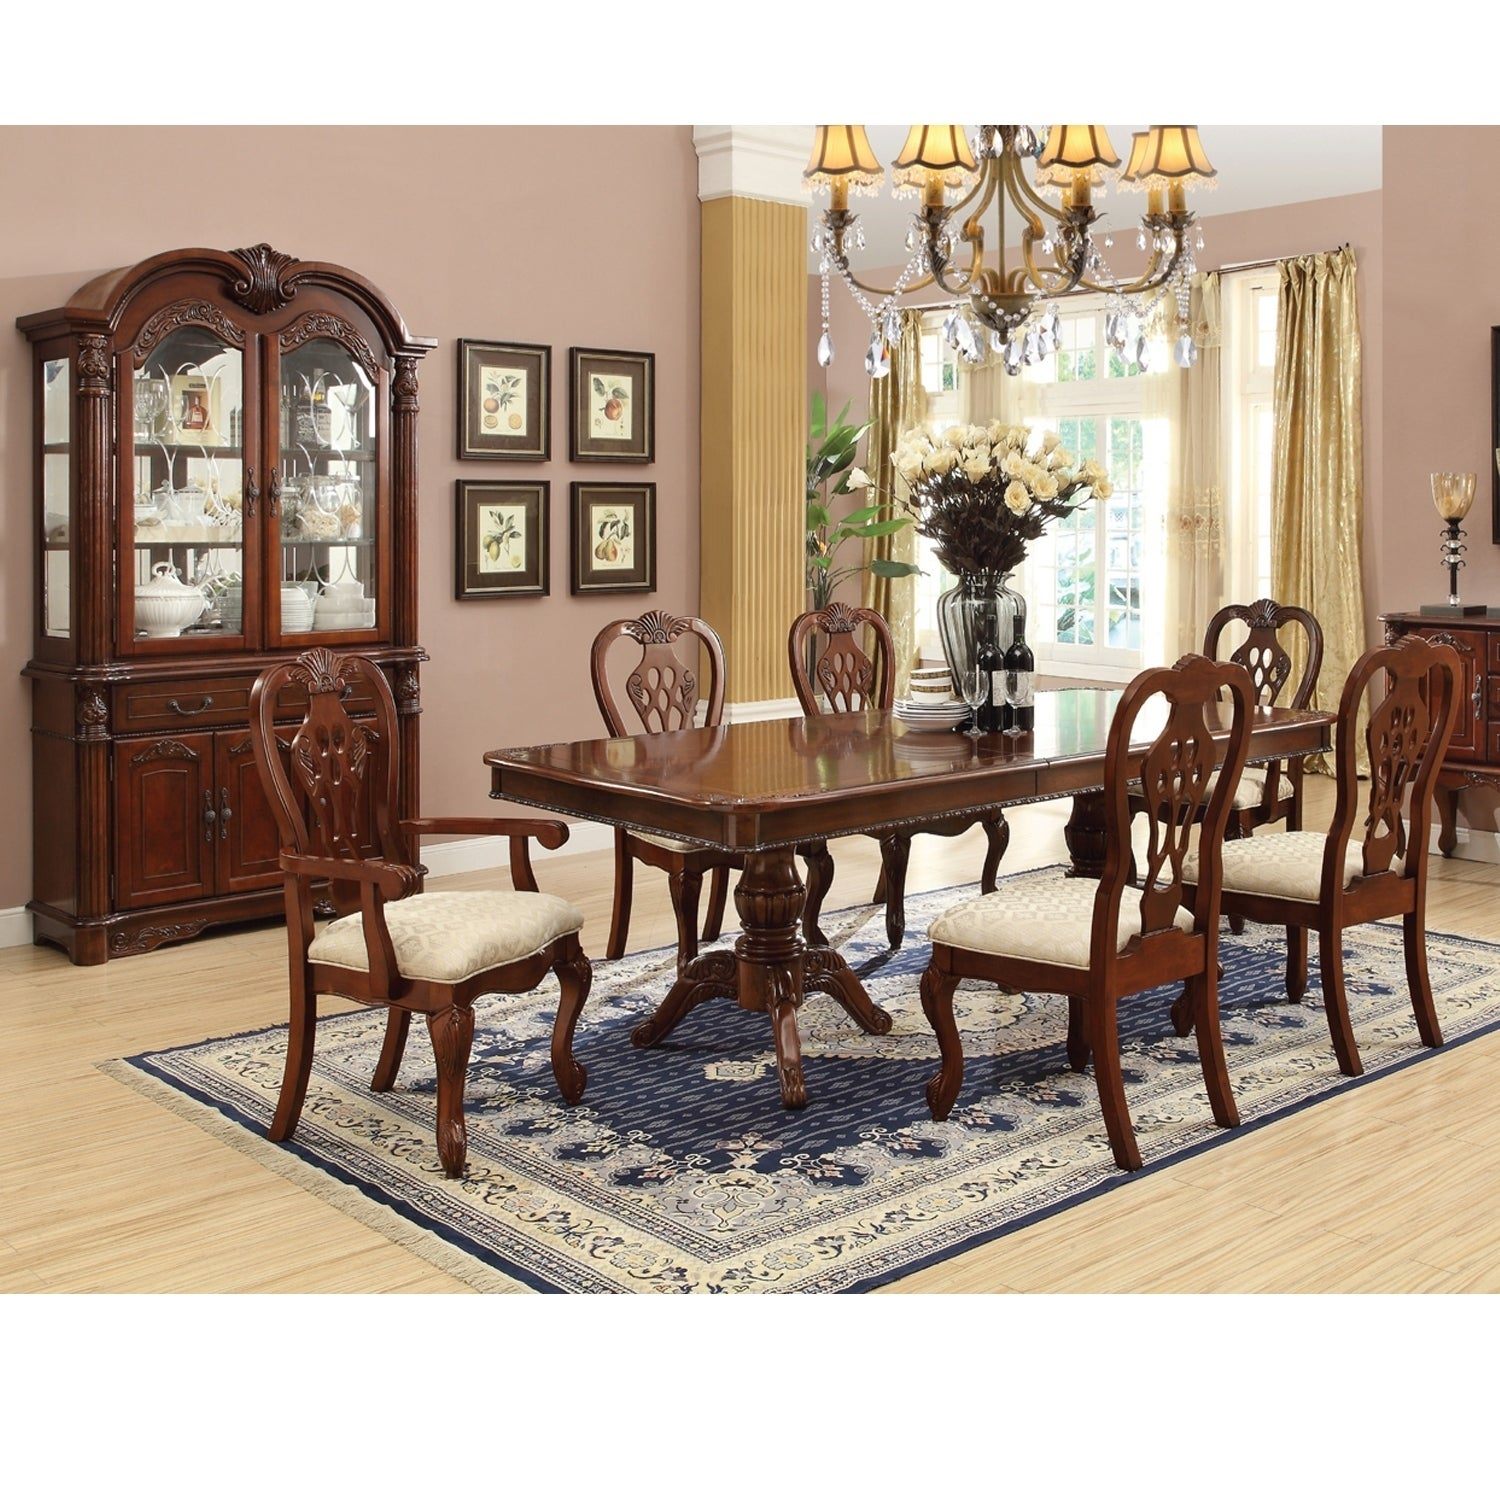 Shop Home Source Antique Cherry 9 Piece Dining Room With 1 Table 4 Side Chairs 2 Arm Buffet And Hutch